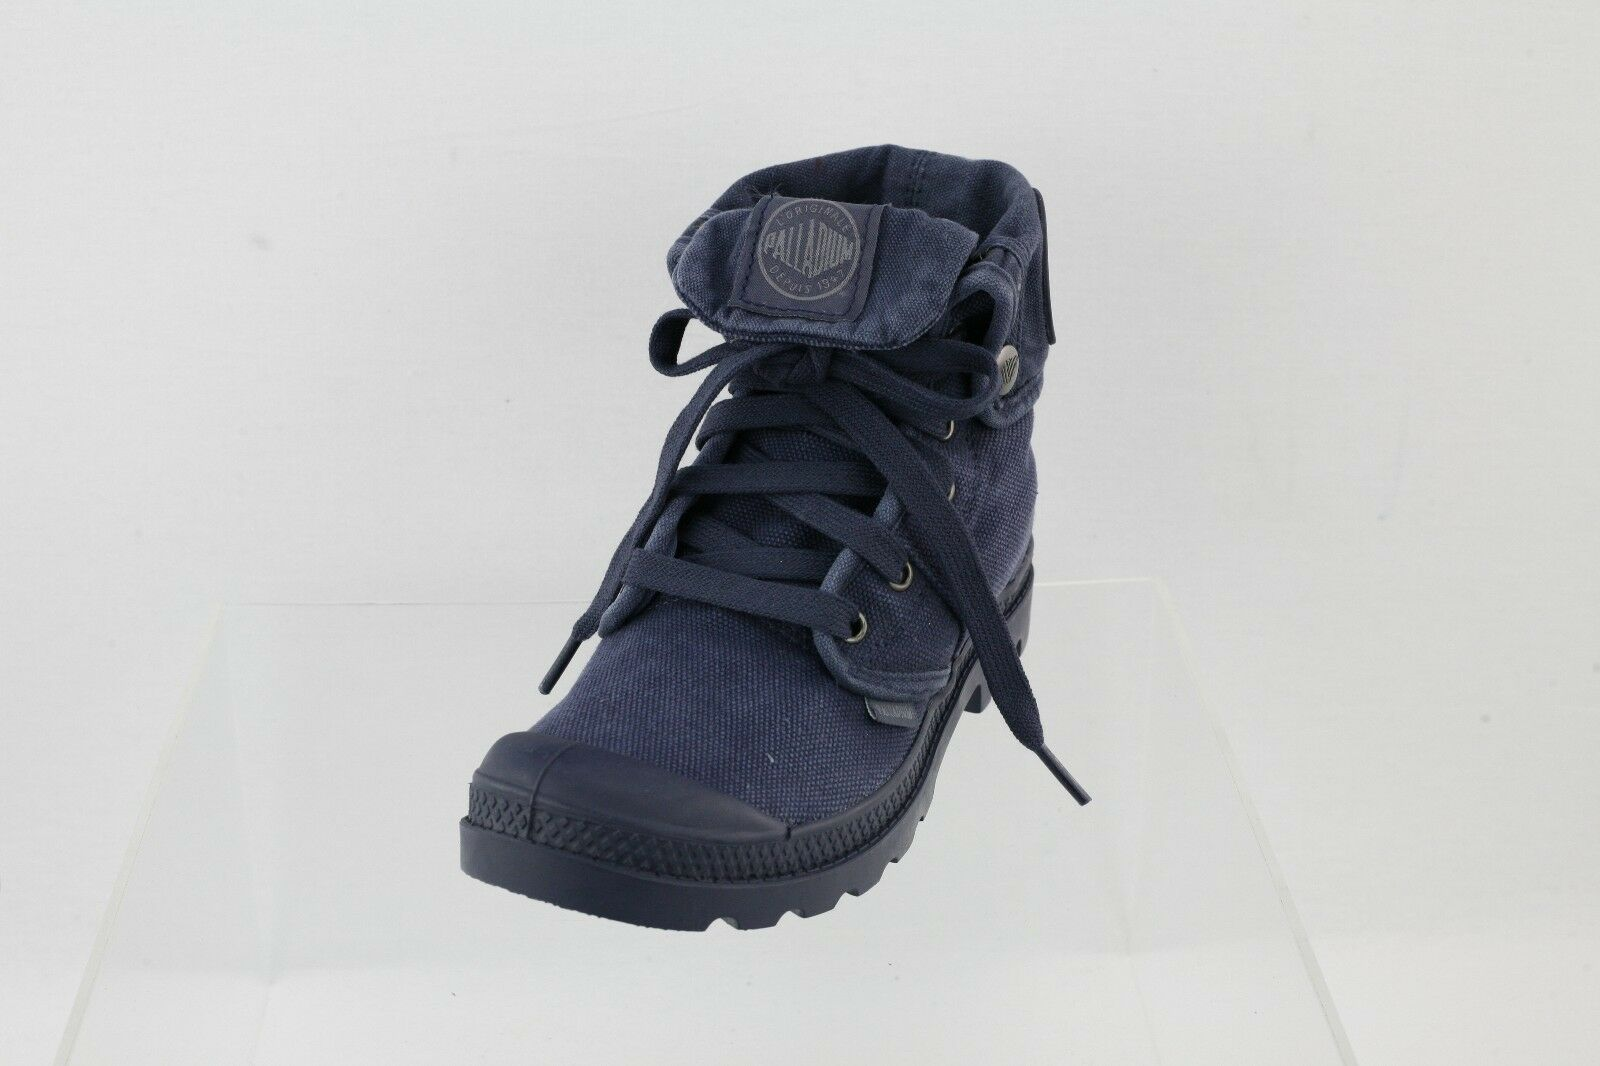 Women's Palladium Pallabrouse Baggy Navy bluee Lace-up High Top Sneakers Size 5.5